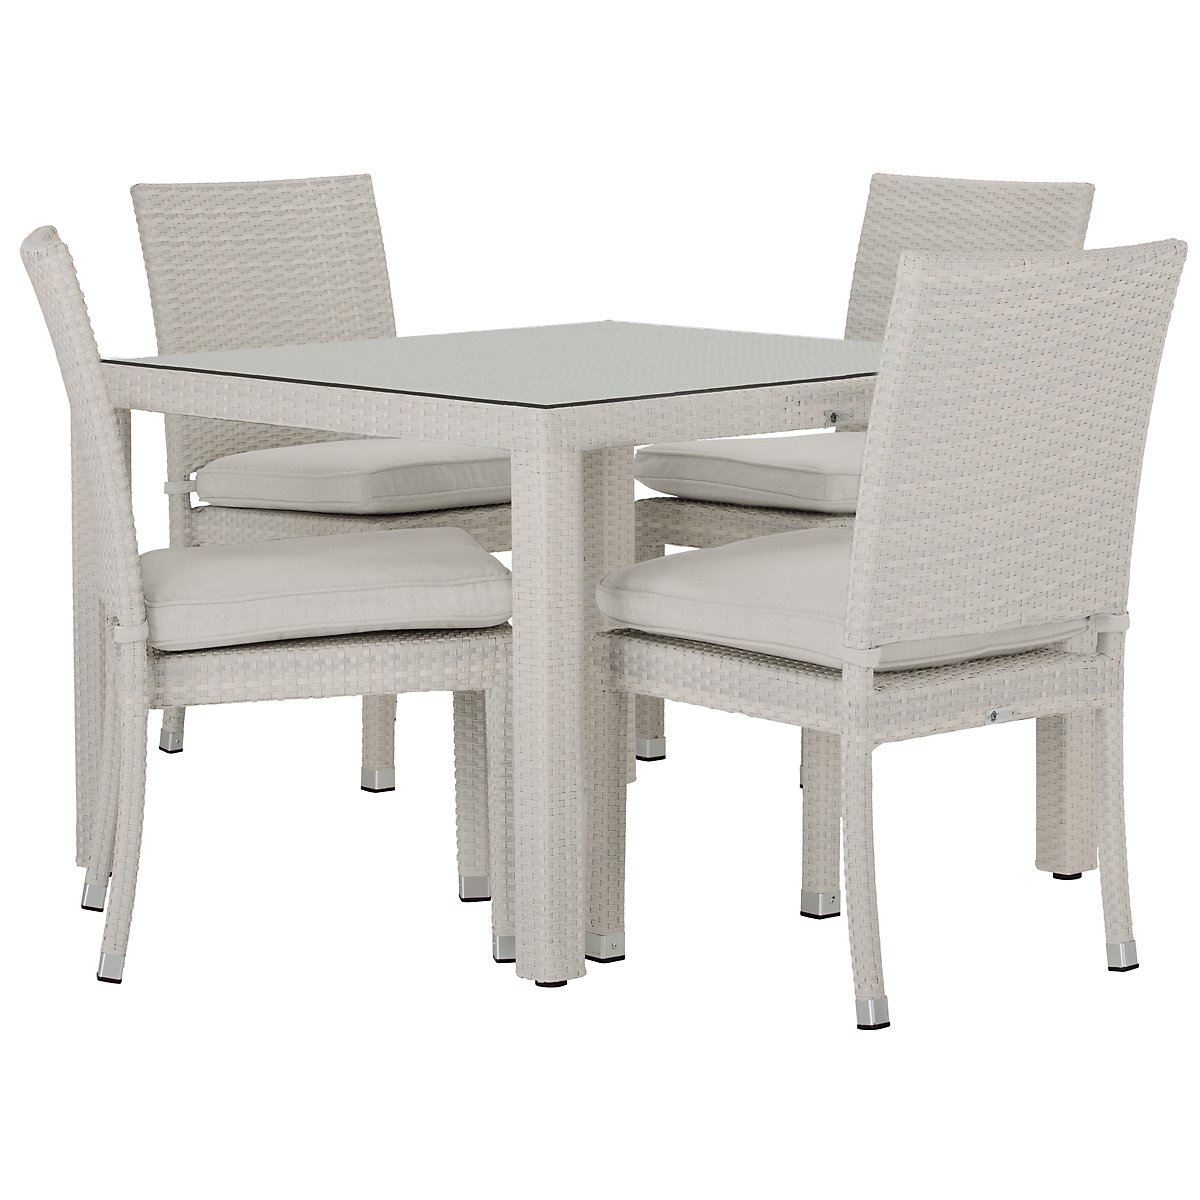 "Bahia White 40"" Square Table & 4 Chairs"